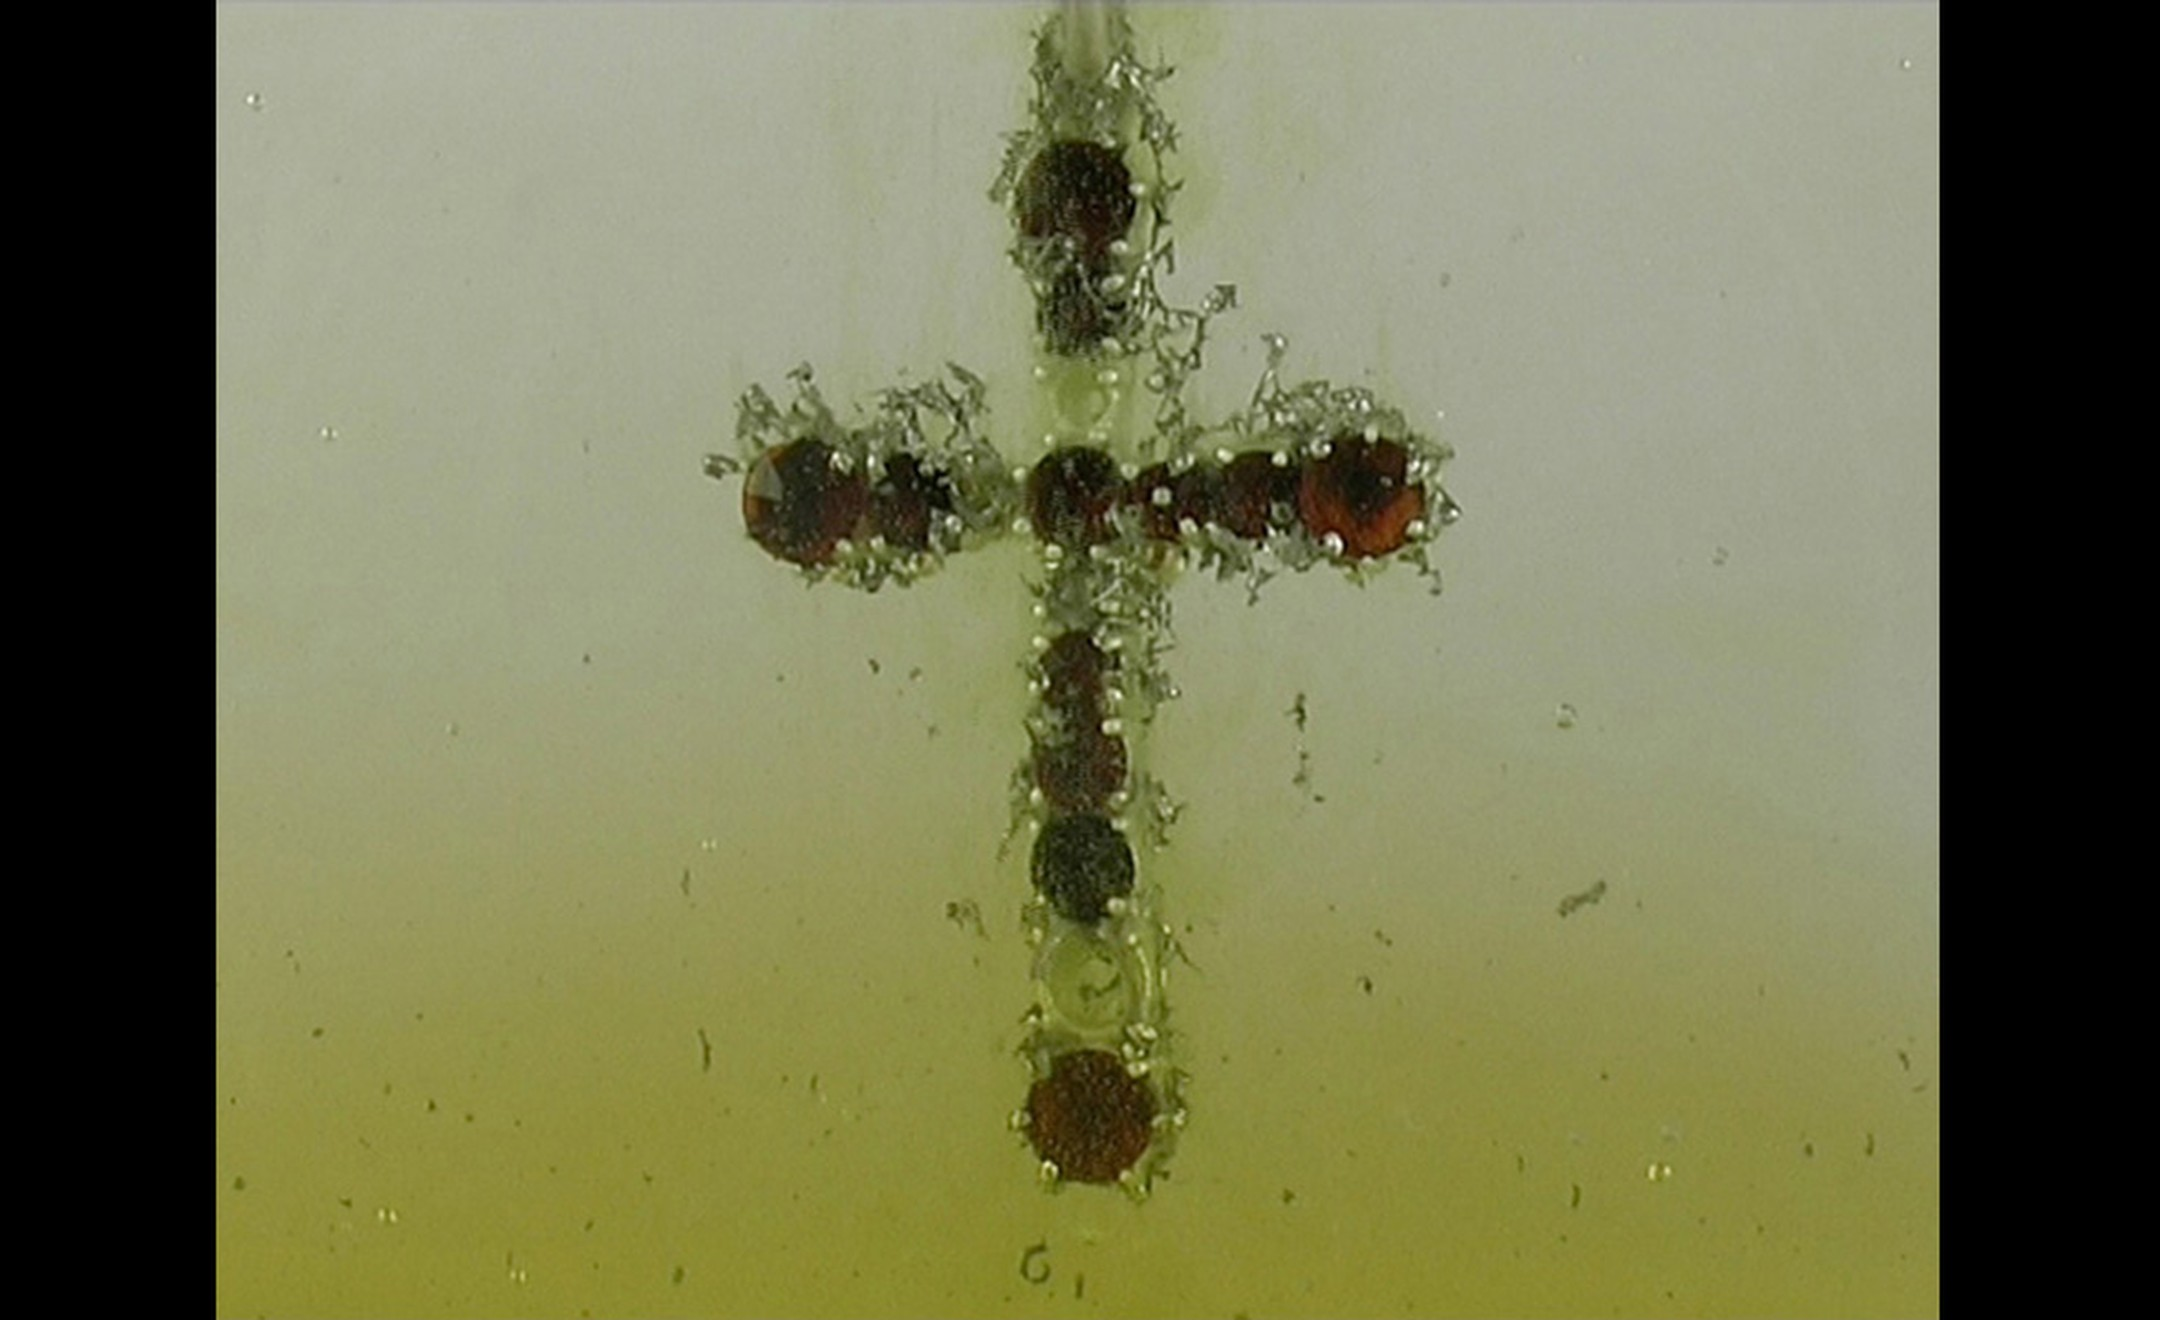 Gisbert Stach. Transformation cross pendant in silver with garnets in acid still image.